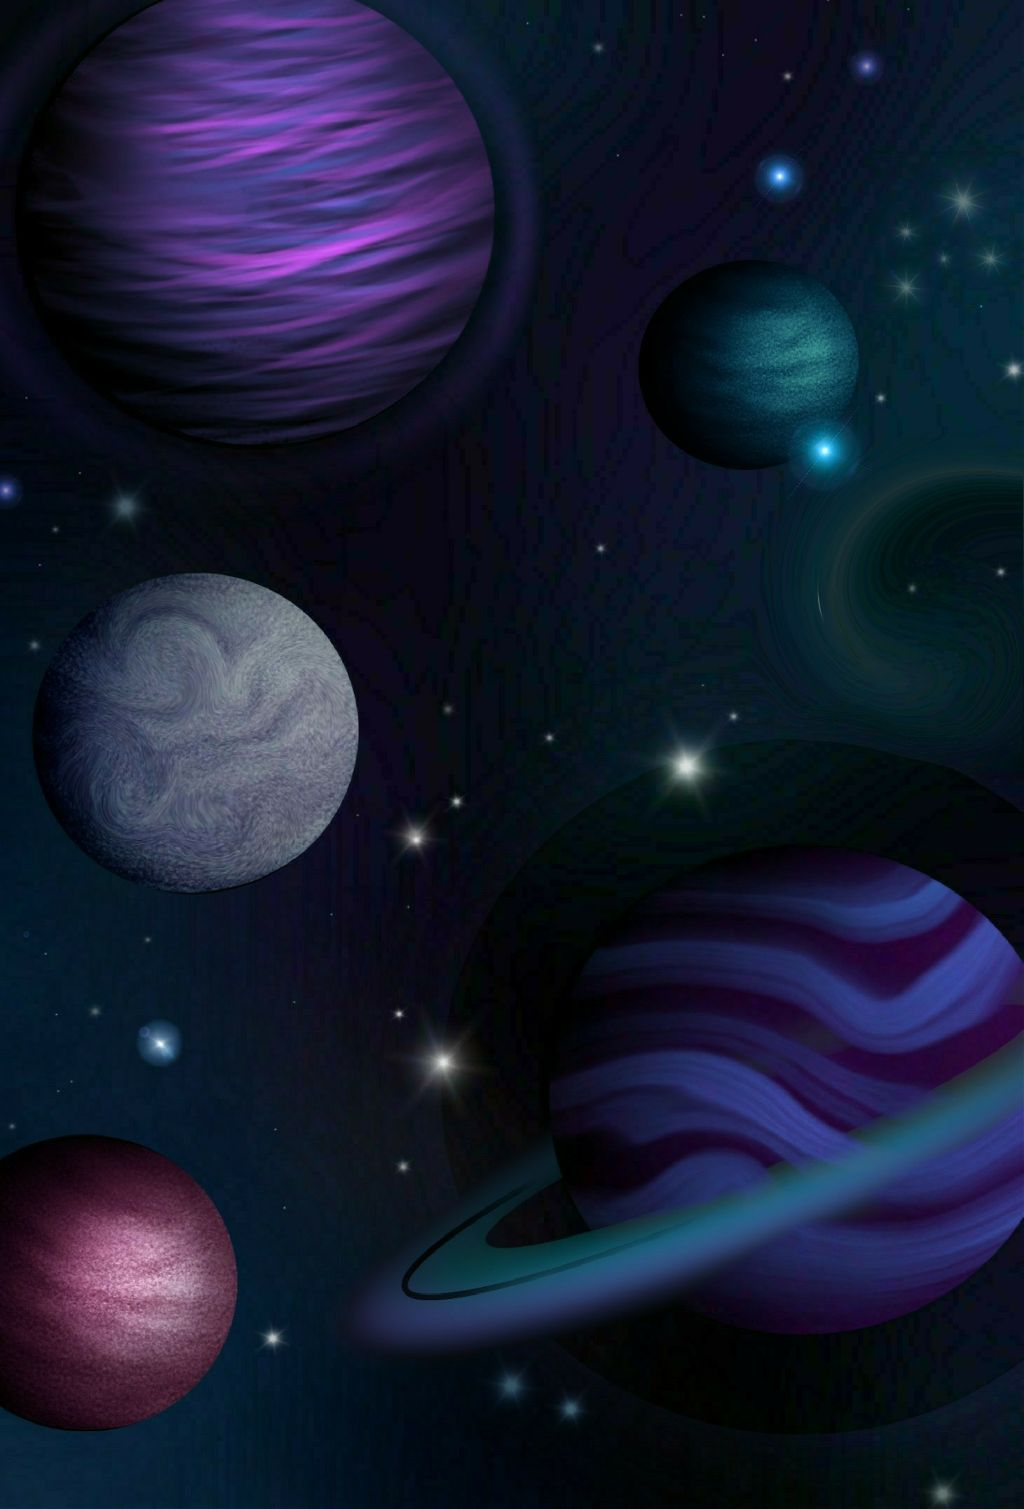 Dcouterspace Draw Space Planets Emotions Stars Travel